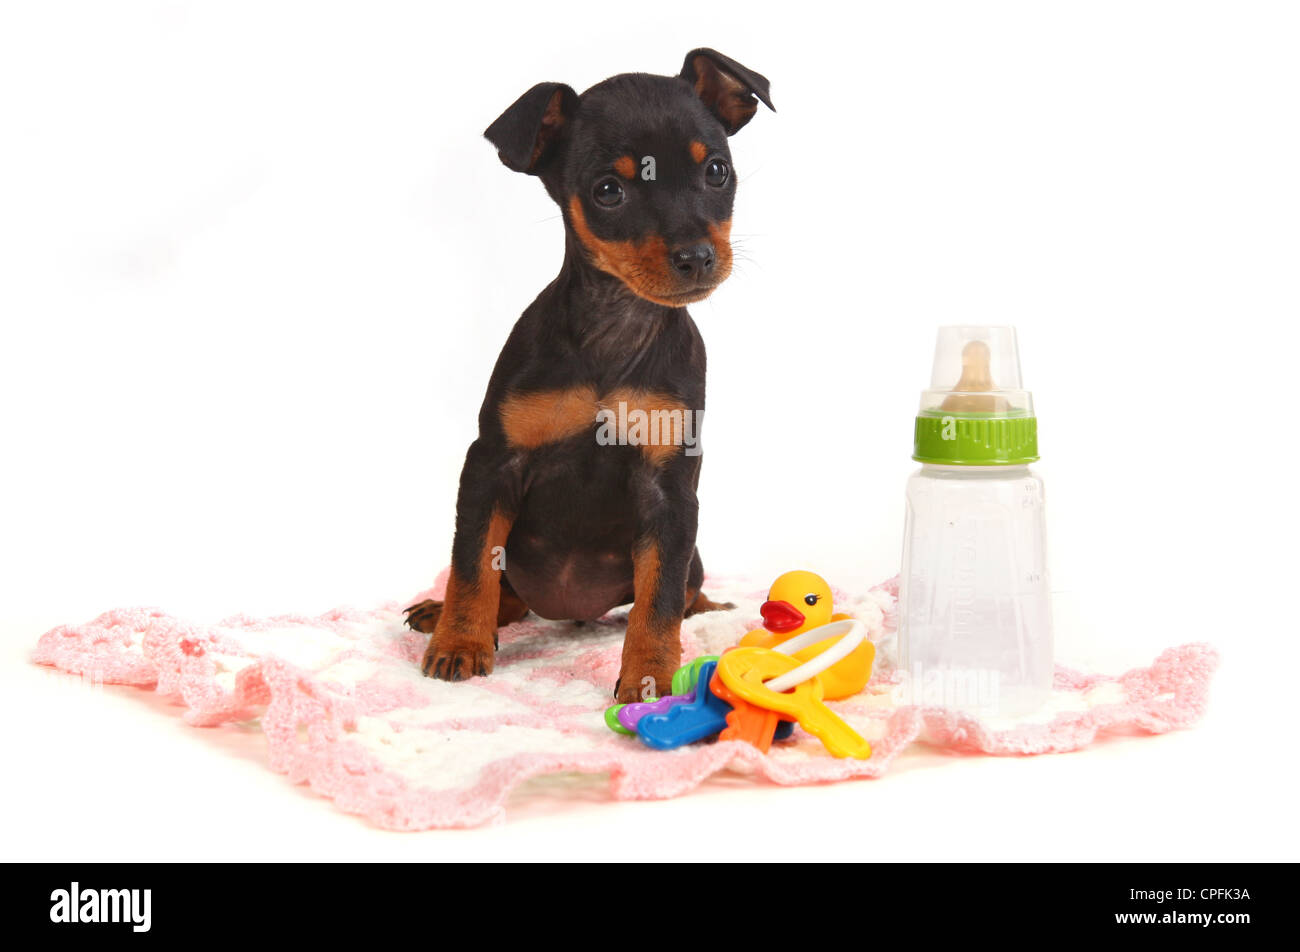 Adorable Miniature Doberman Toy Pinsher Puppy Dog on White Background - Stock Image